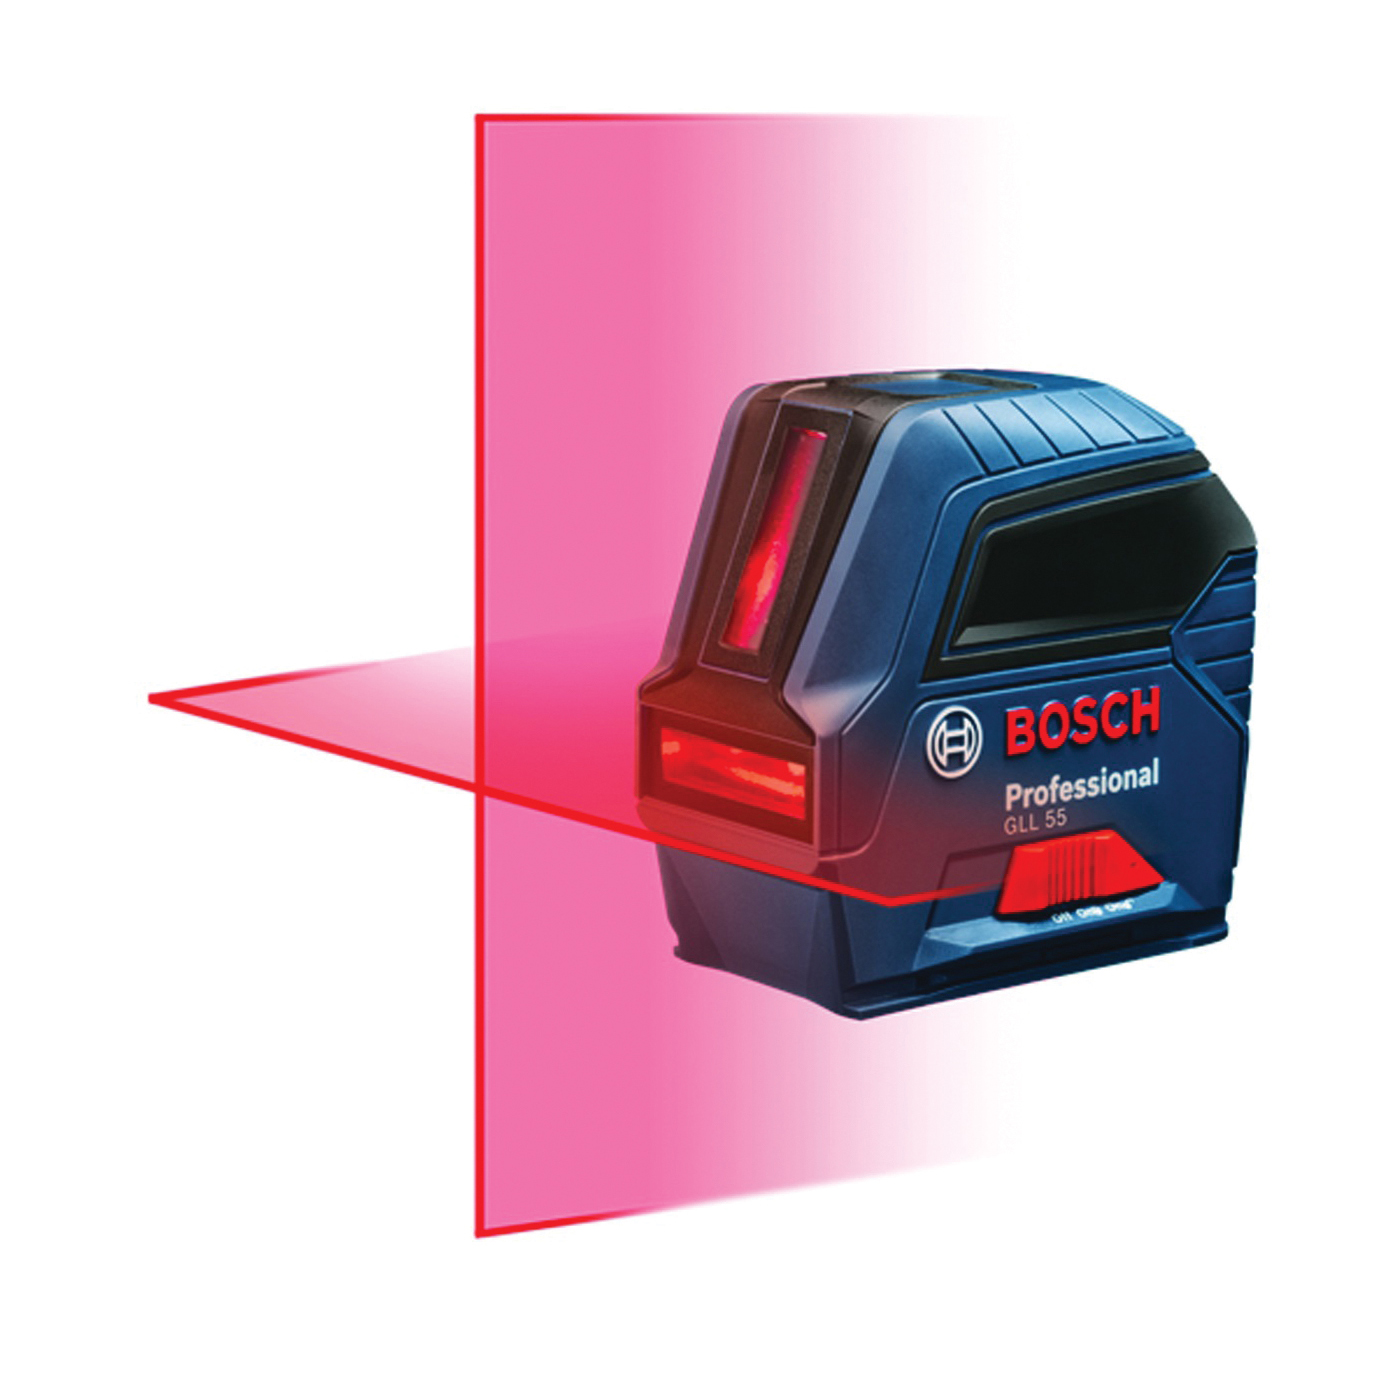 Picture of Bosch GLL 55 Cross-Line Laser, 50 ft, +/-1/8 in at 33 ft Accuracy, 2 -Line